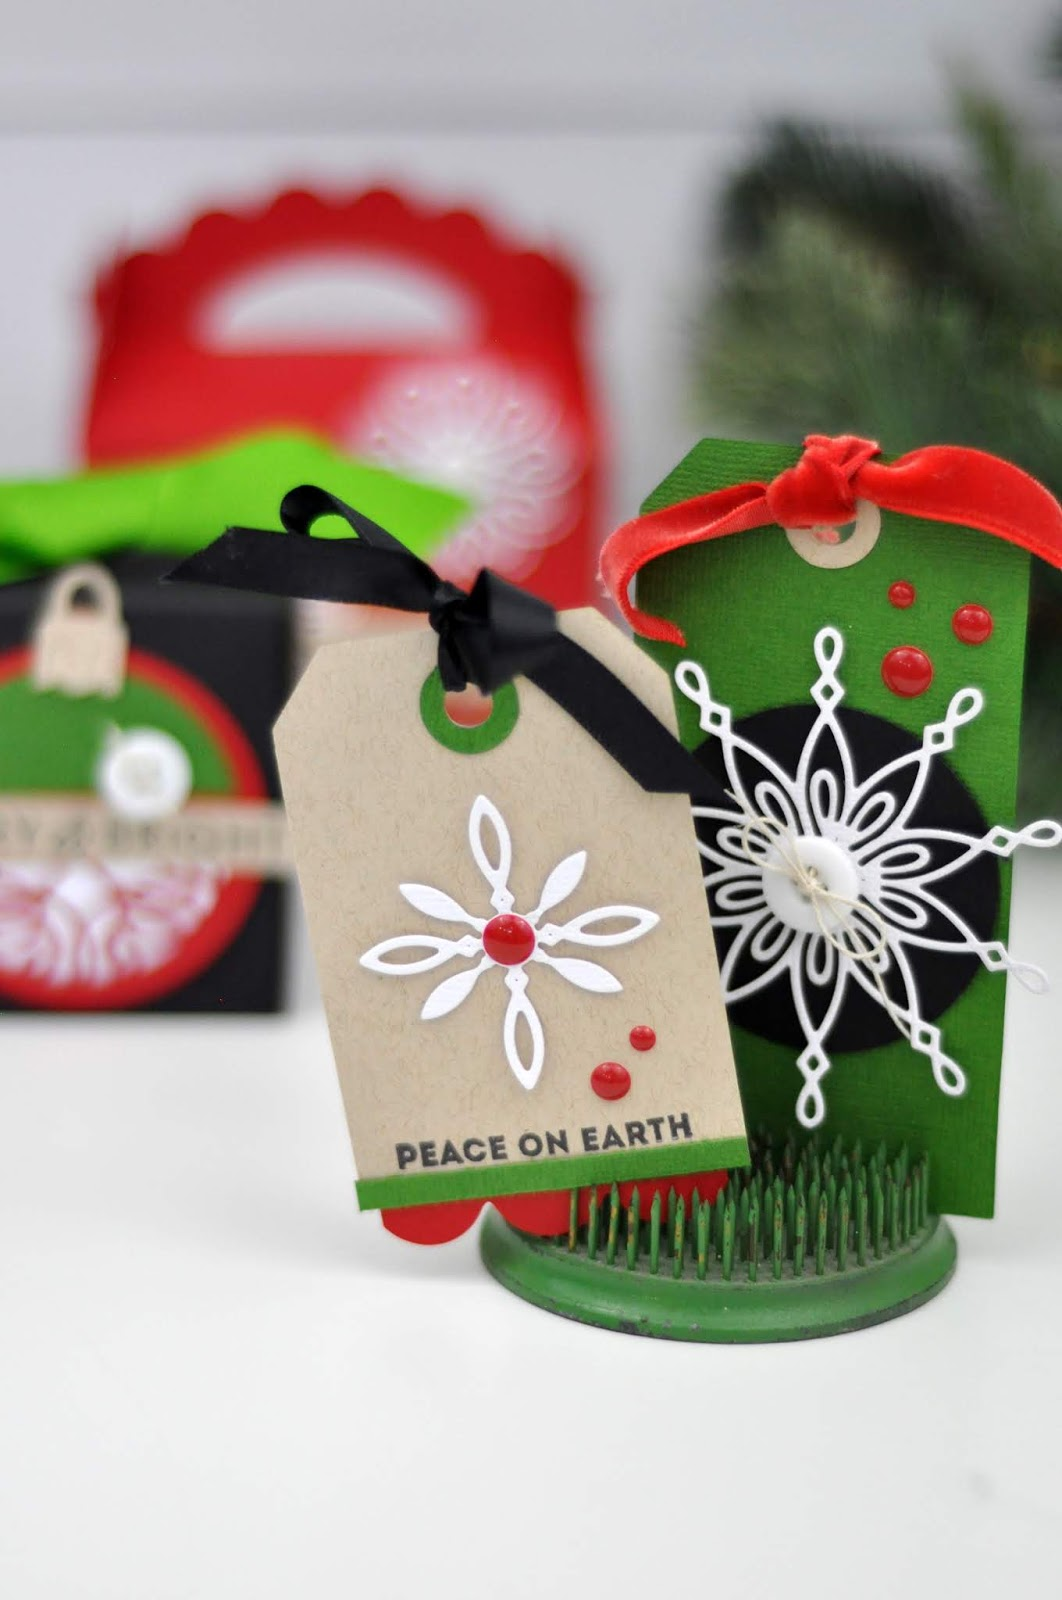 Spellbinders die cut Christmas tags and gift boxes by Jen Gallacher. Holiday gift tag ideas. #christmastags #christmasgiftboxes #spellbinders